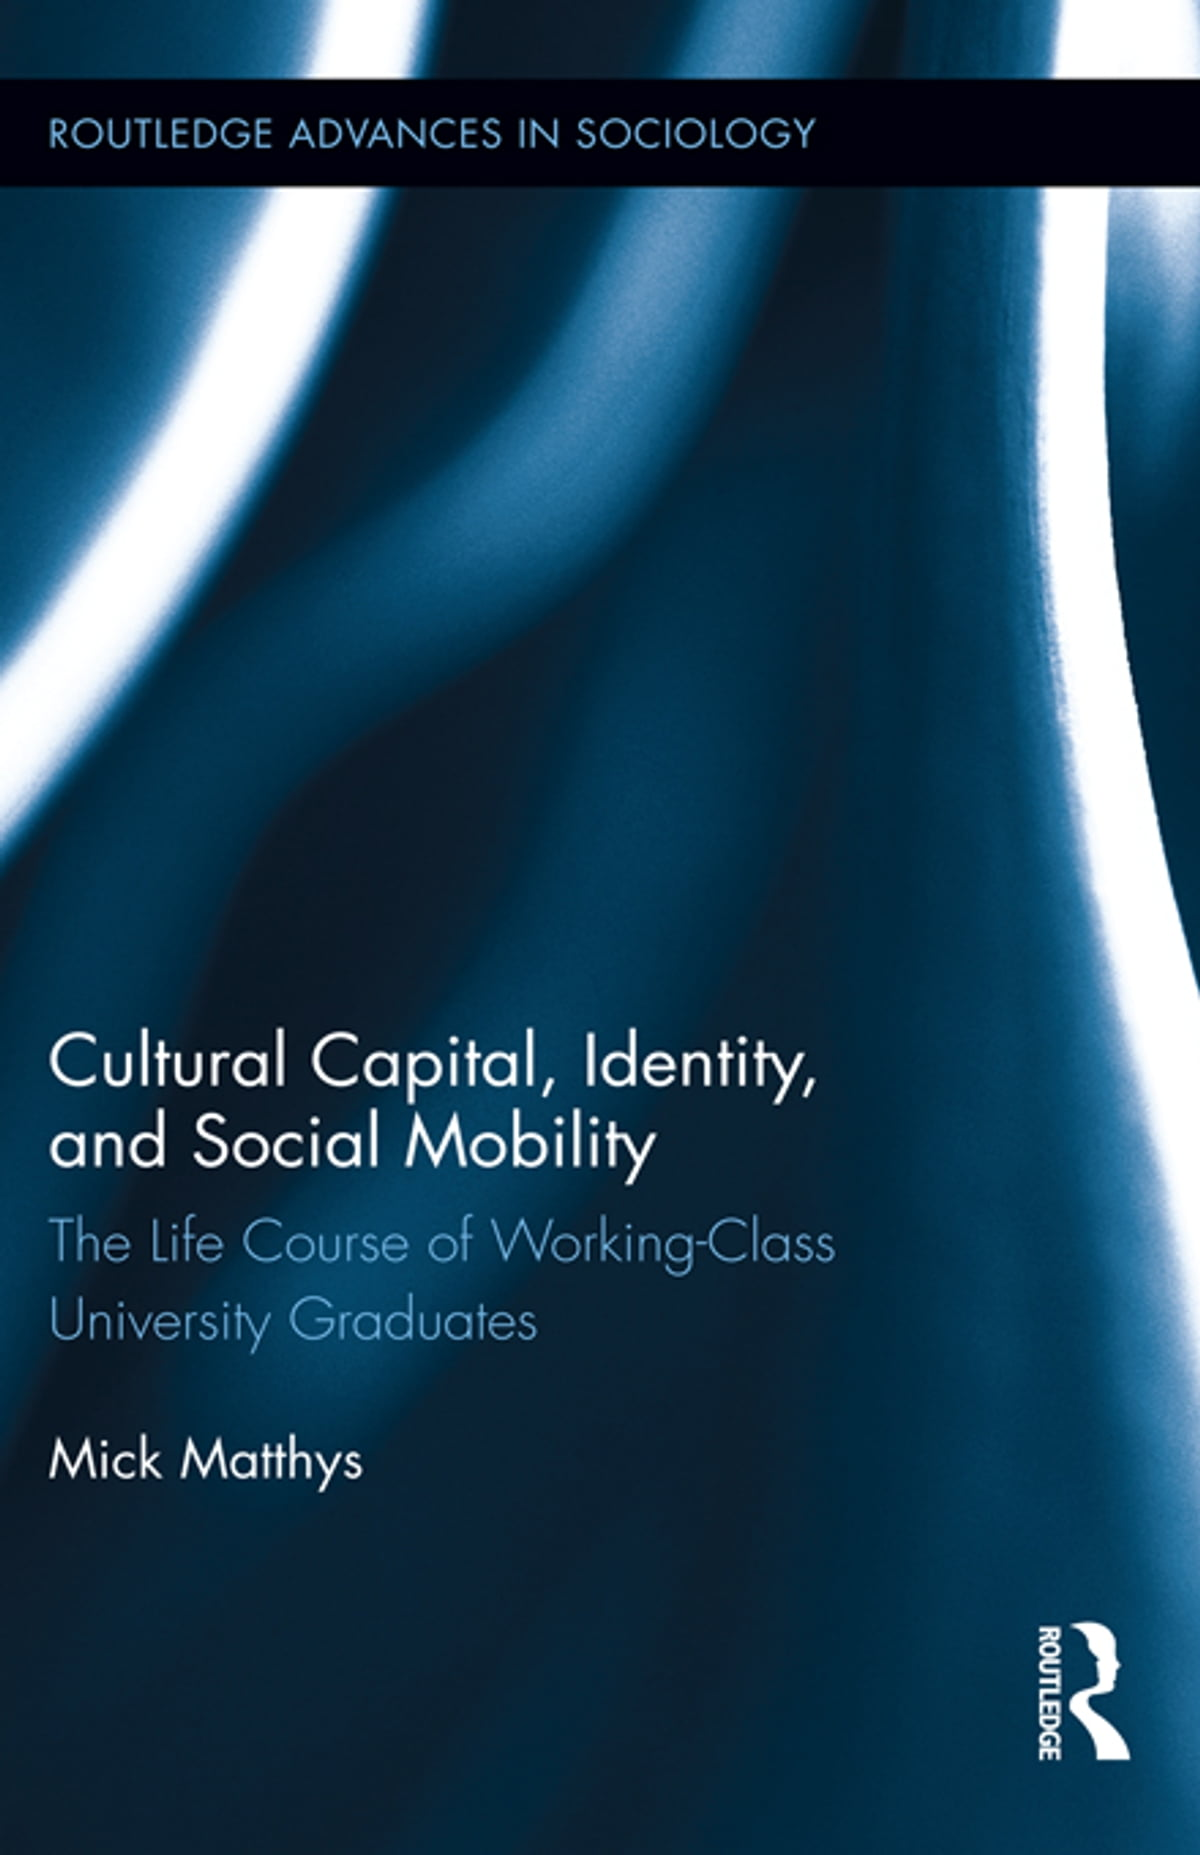 Cultural Capital, Identity, And Social Mobility Ebook By Mick Matthys   9781136207044  Rakuten Kobo